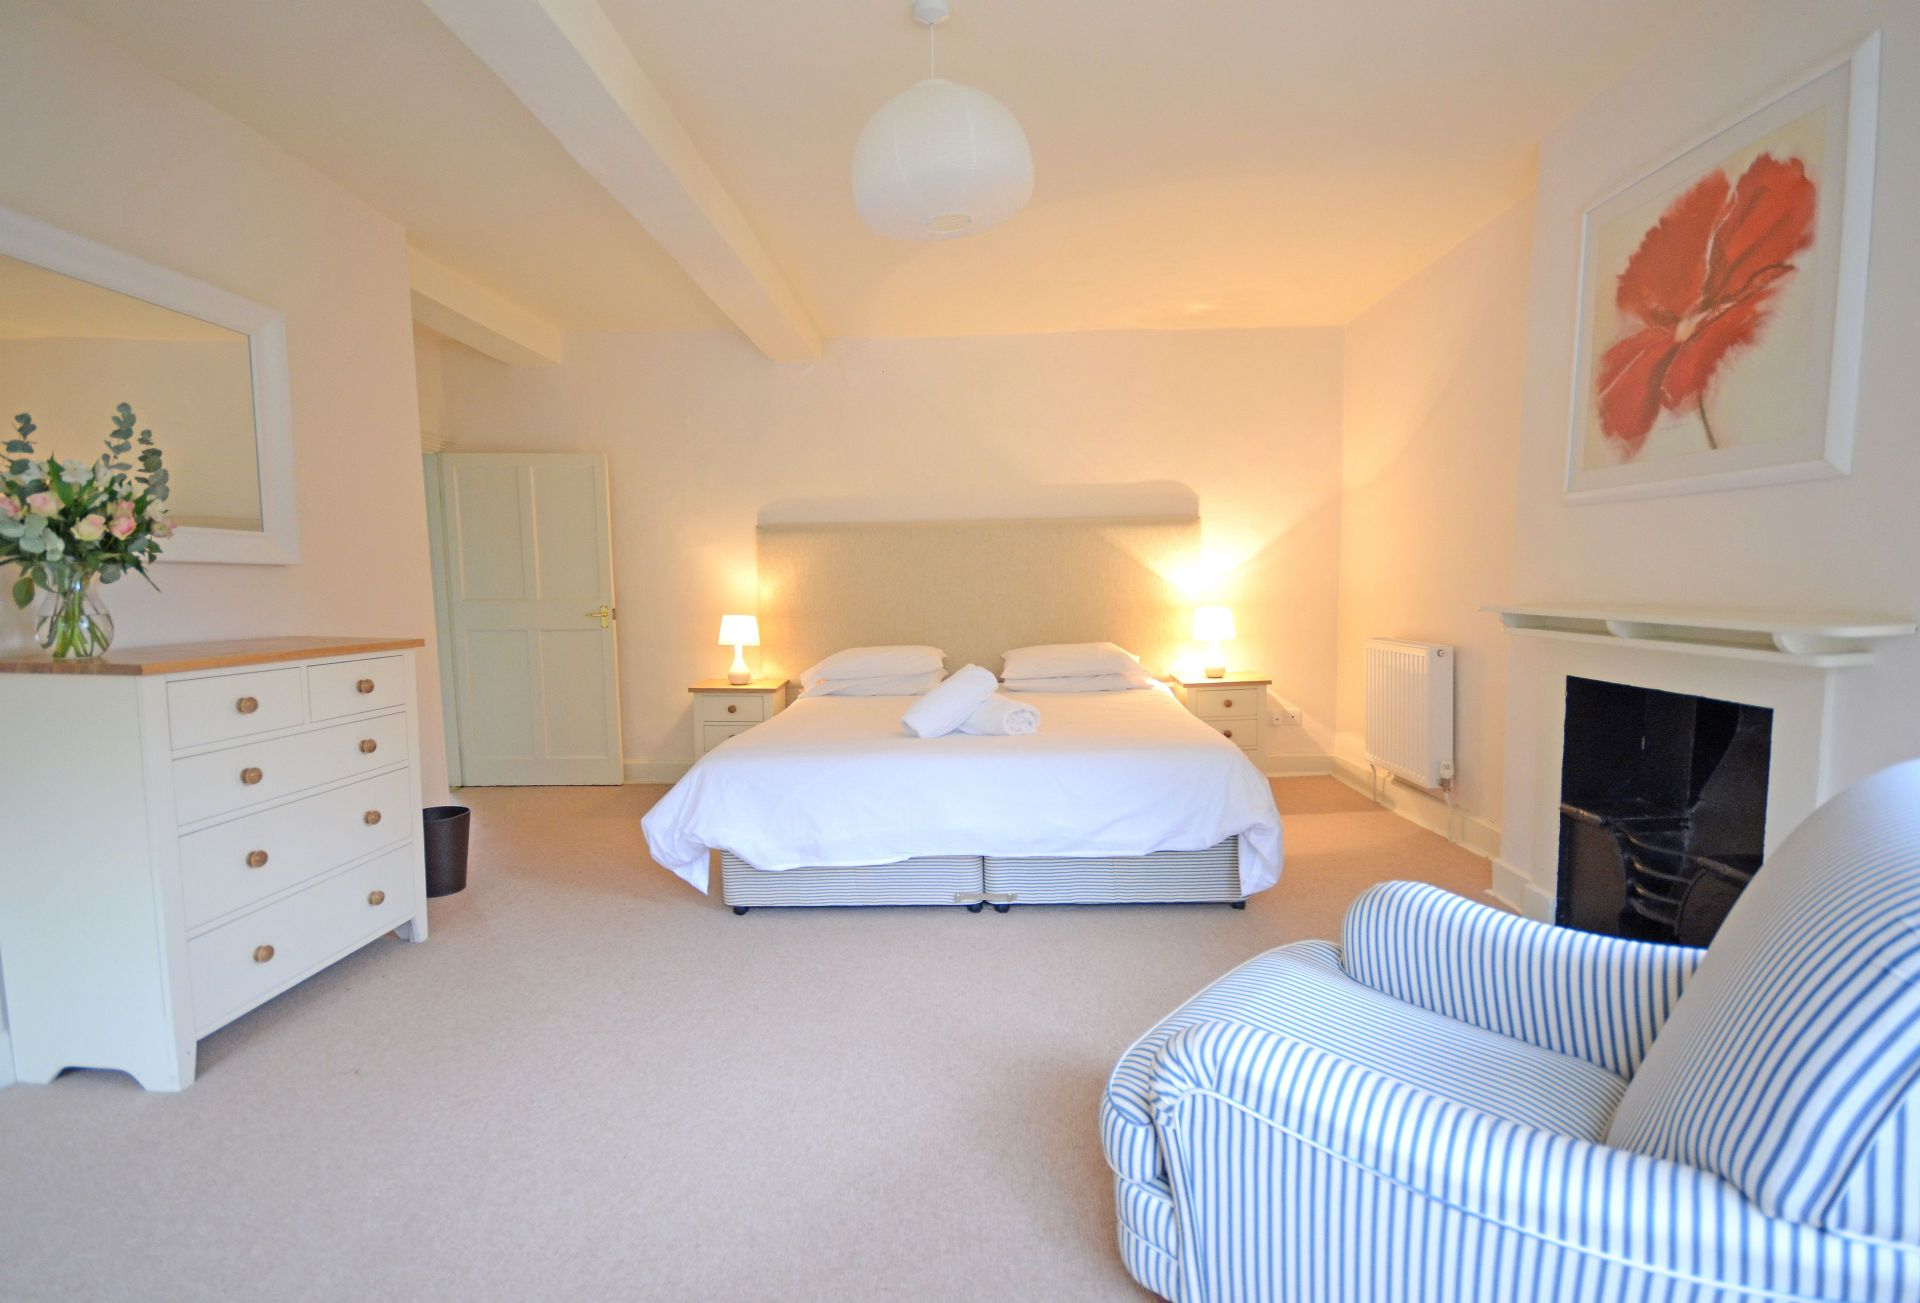 Another aspect of a Bedroom